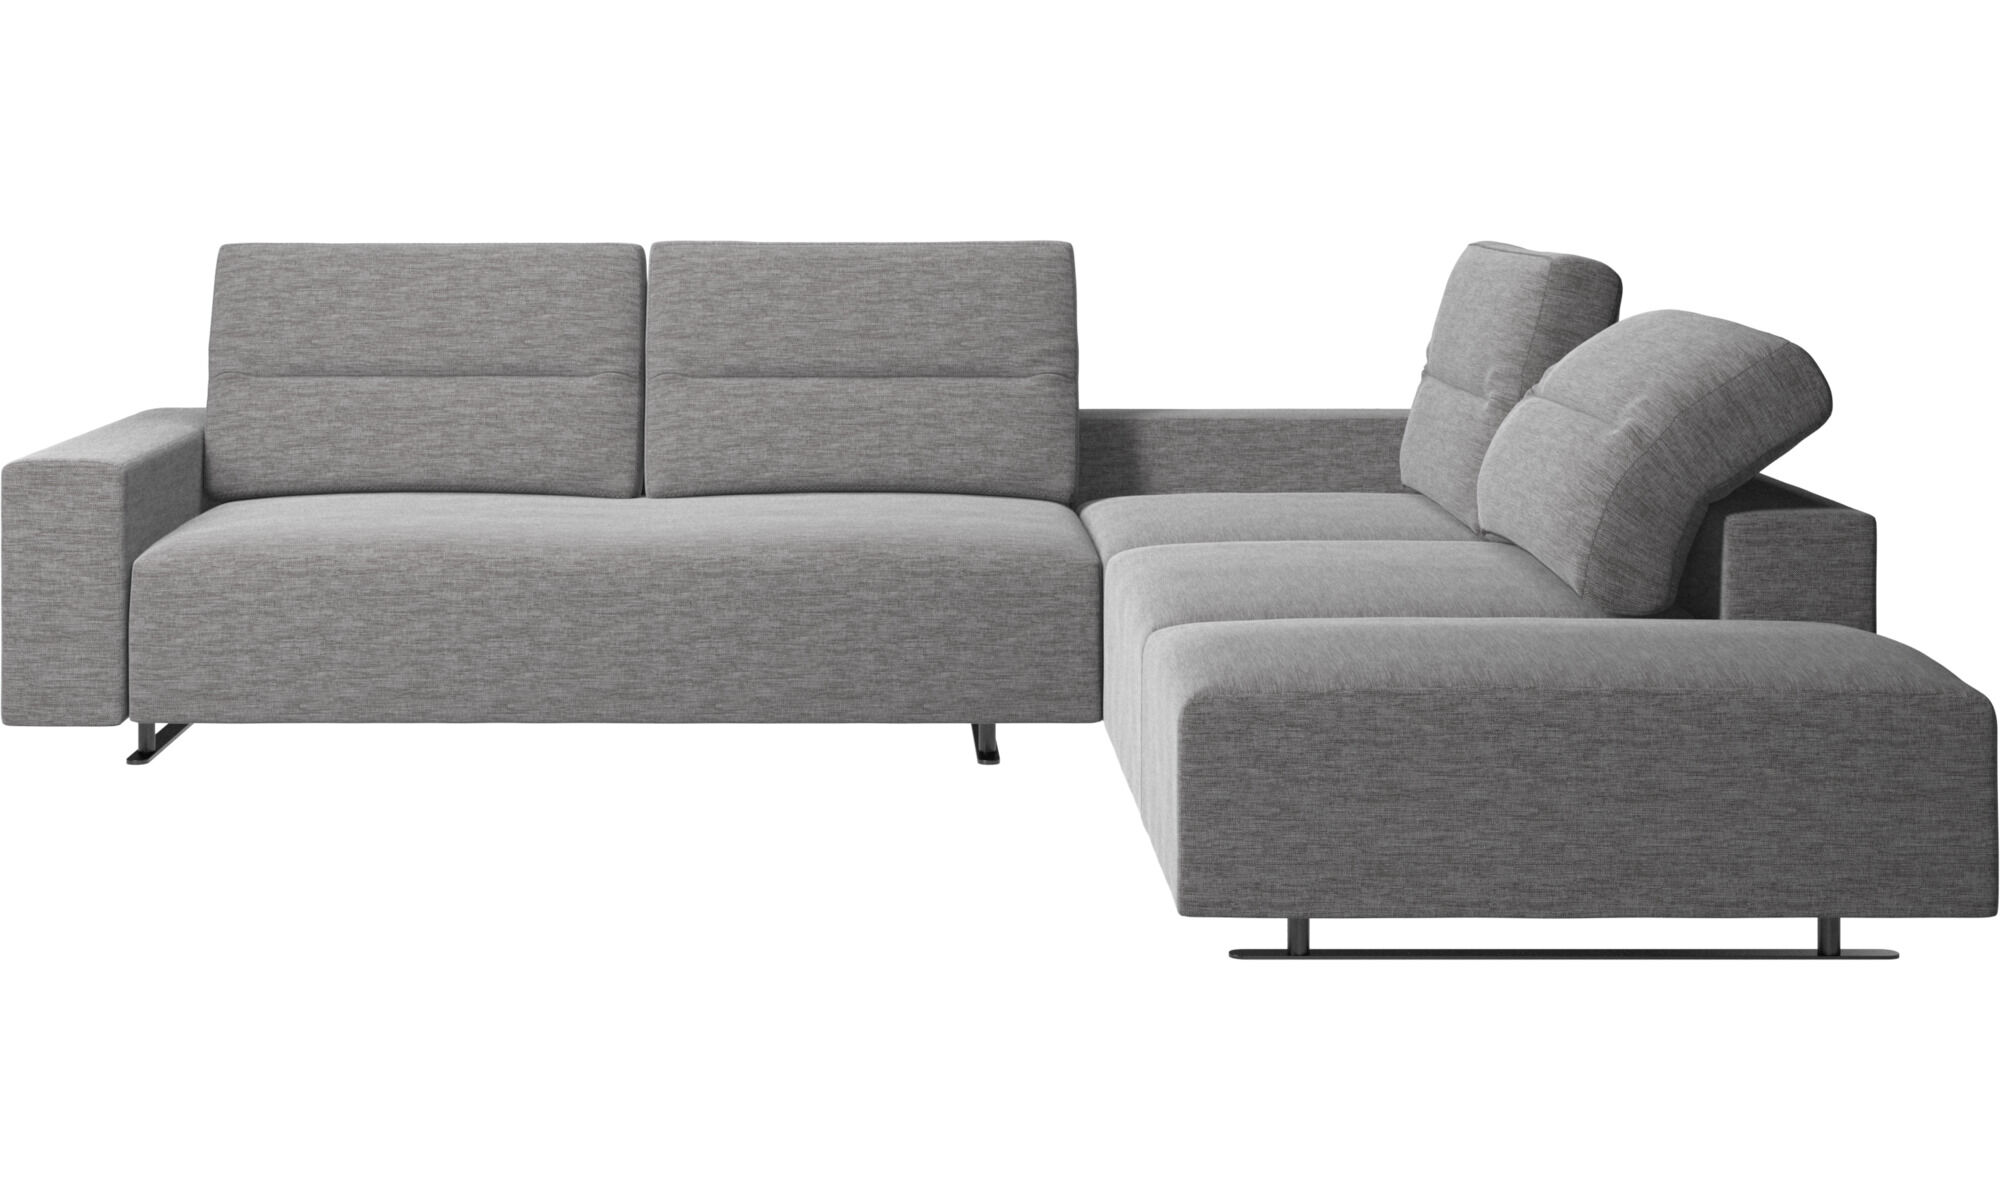 Big Sofa Sand Sofas From The Boconcept Collection